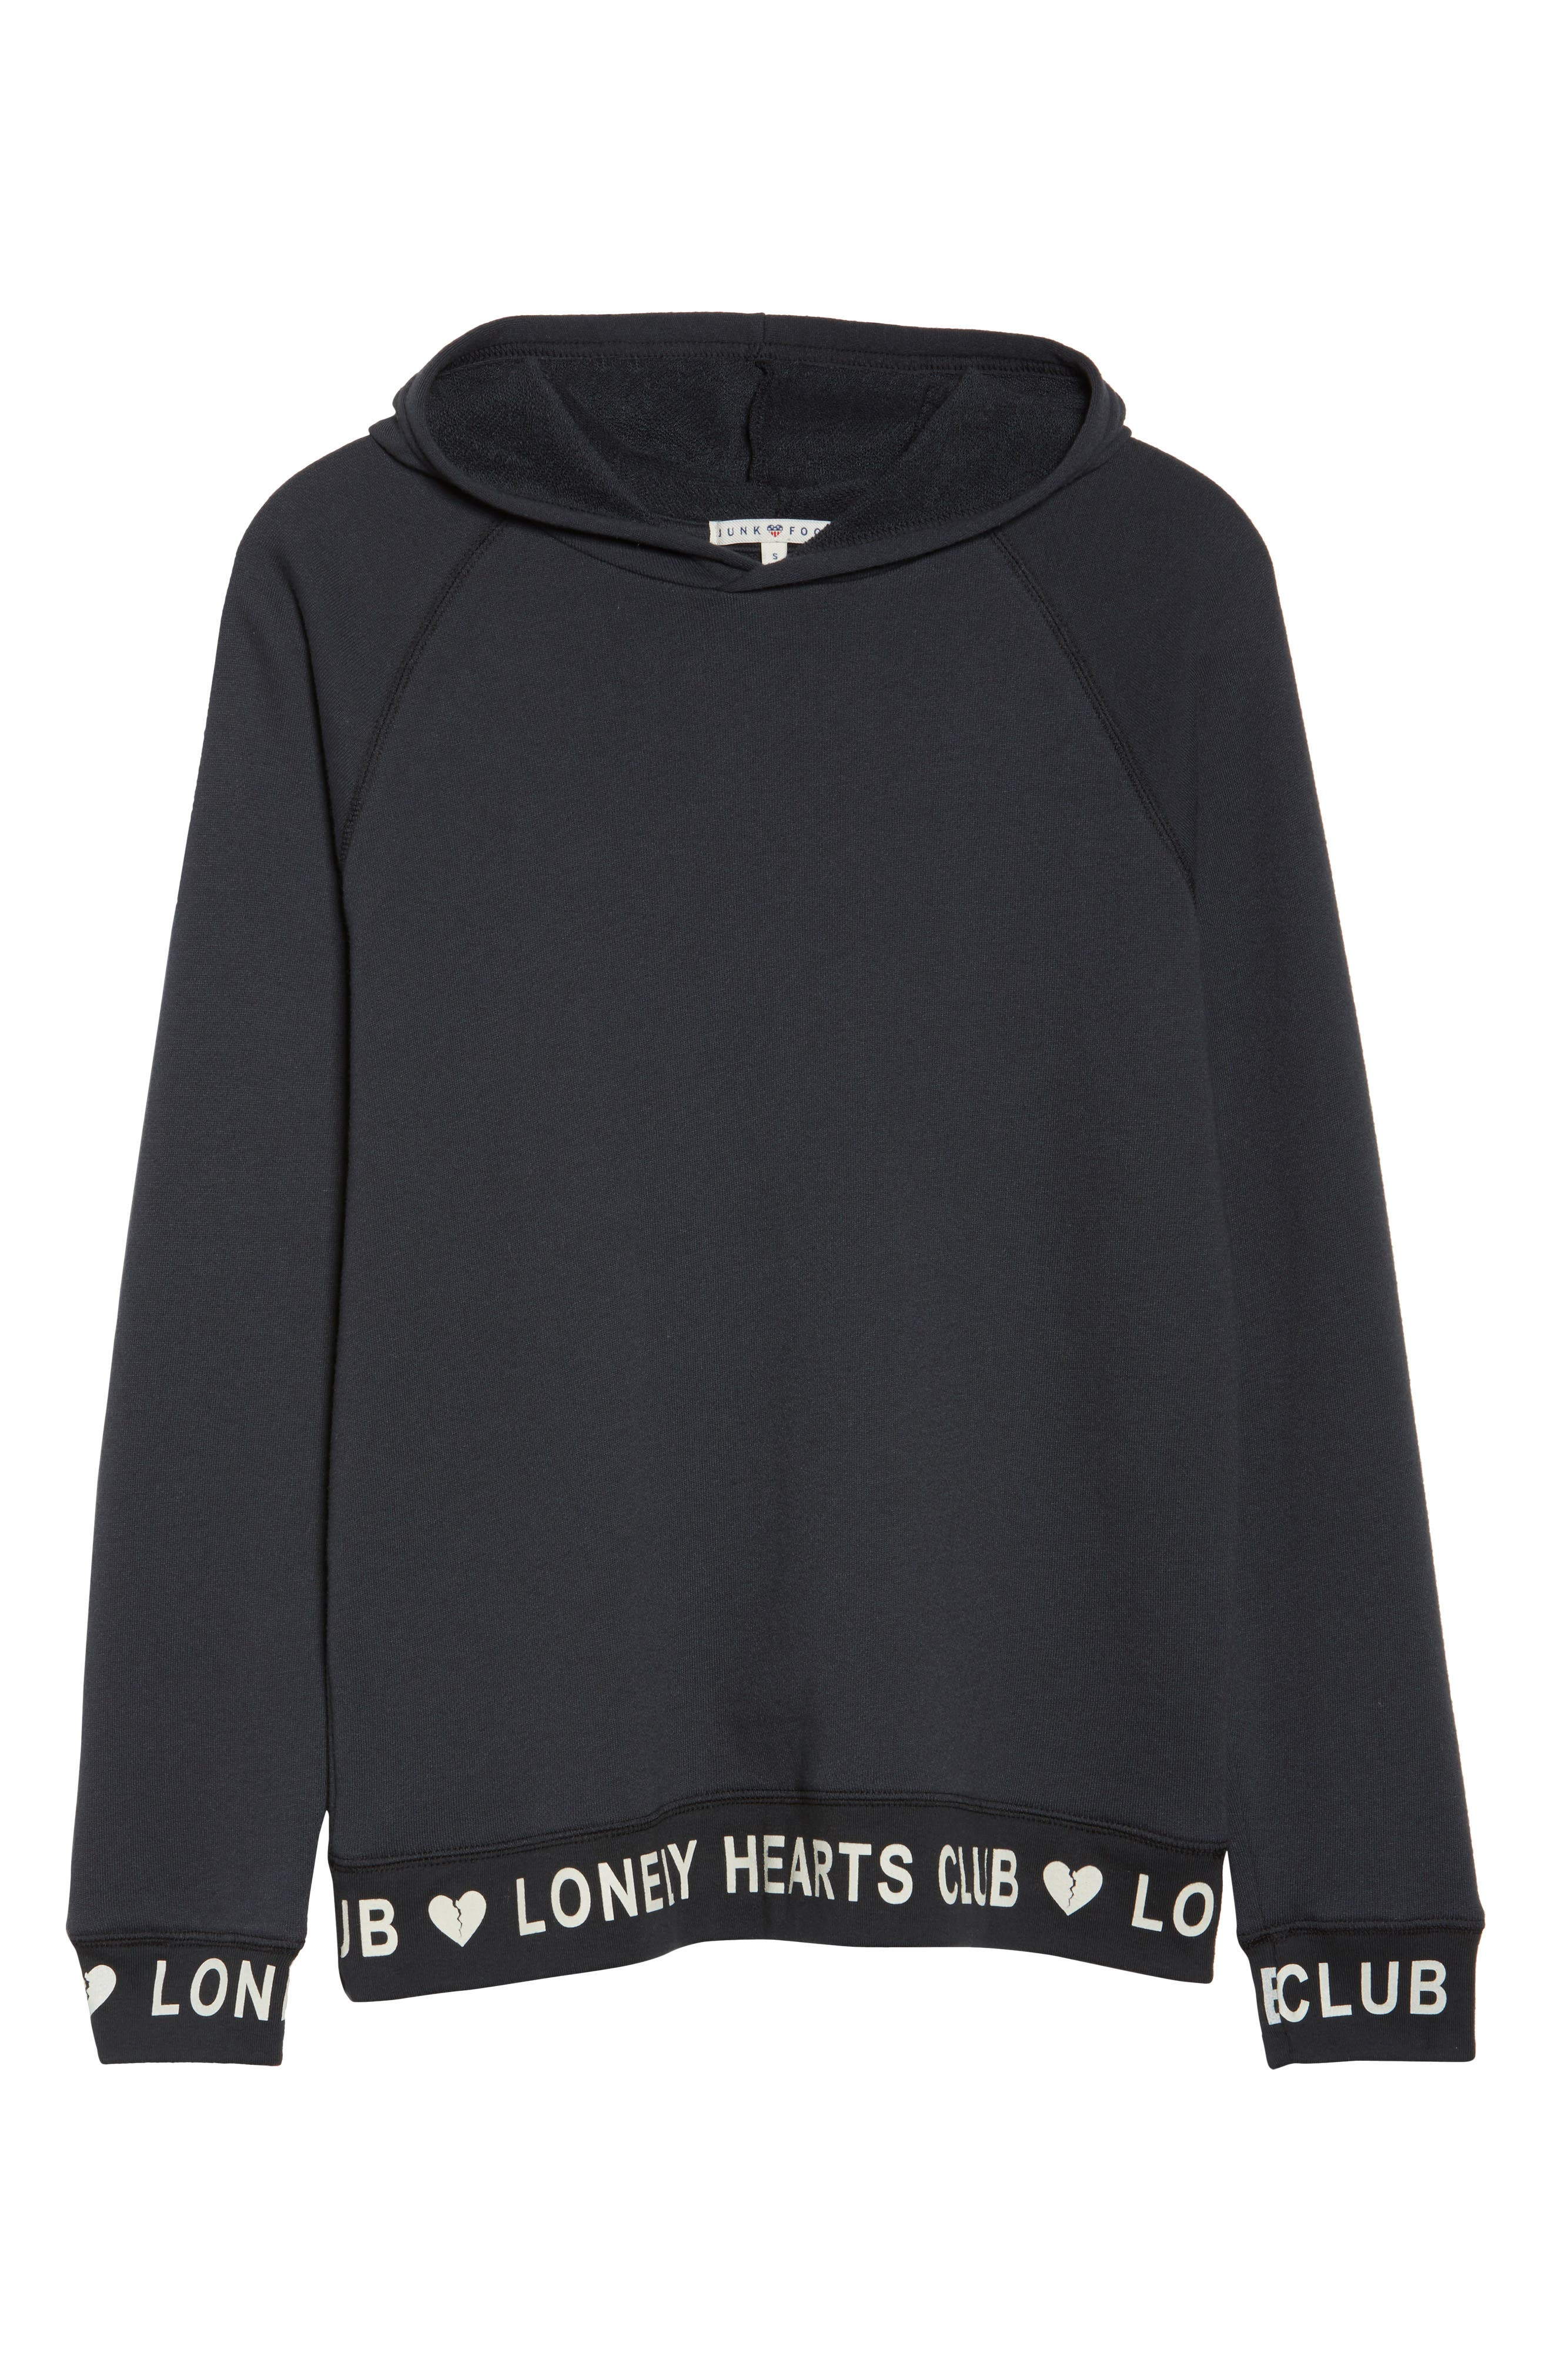 Lonely Hearts Club Hoodie,                             Alternate thumbnail 4, color,                             Jet Black